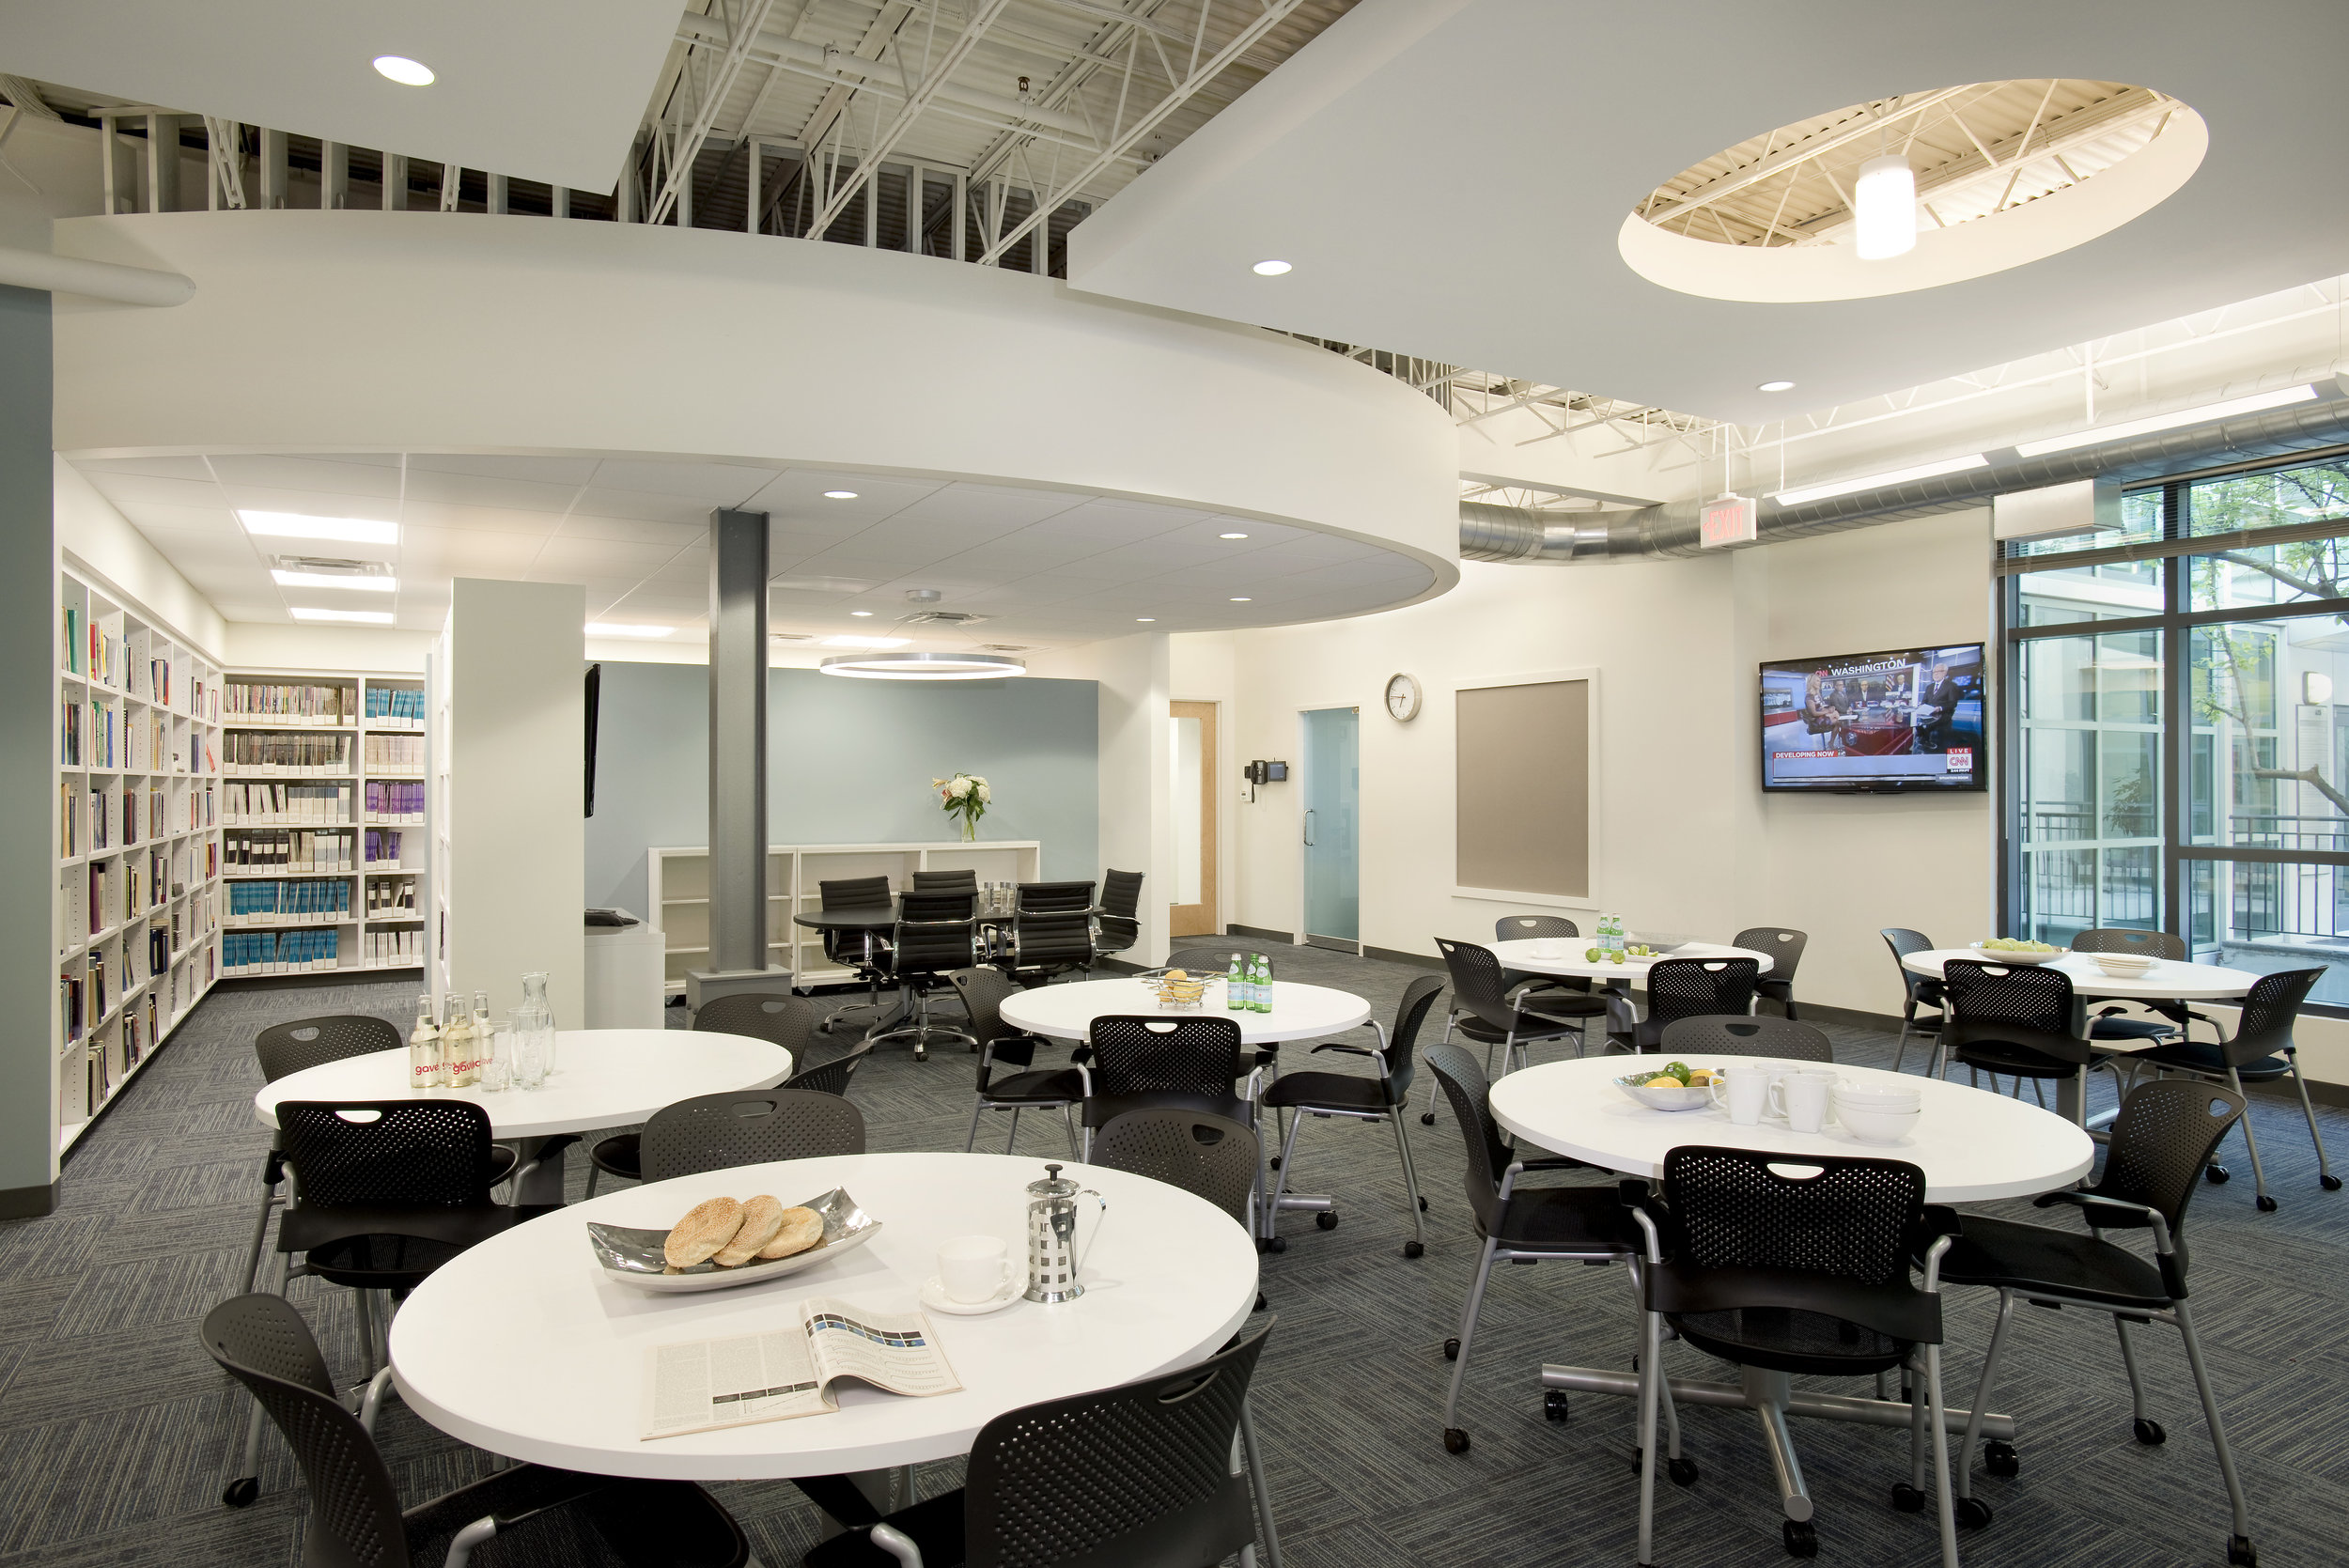 Charles River Analytics by HDS Architecture